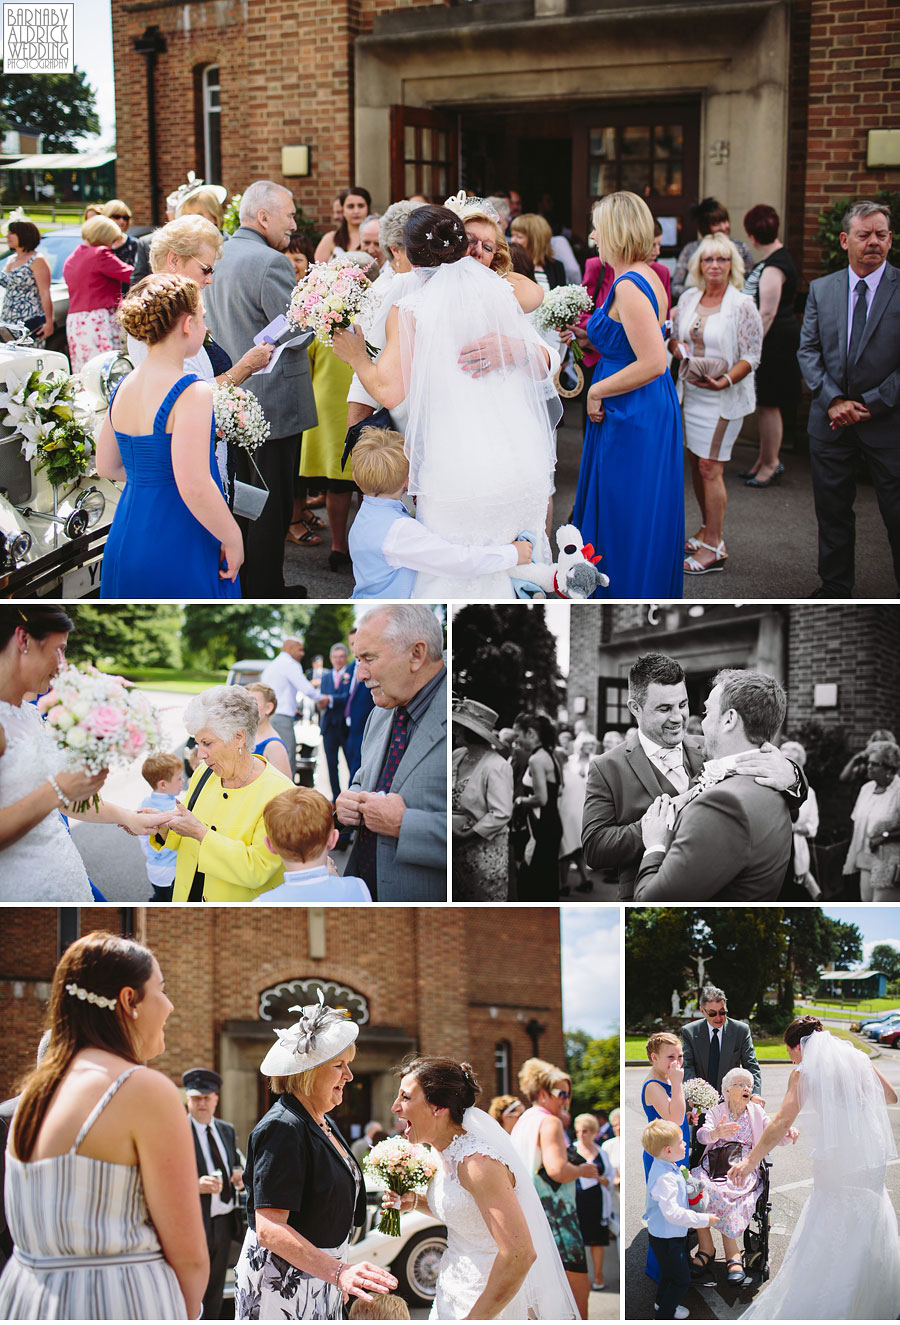 Bradford Golf Course Wedding Photography by Leeds Photographer Barnaby Aldrick 032